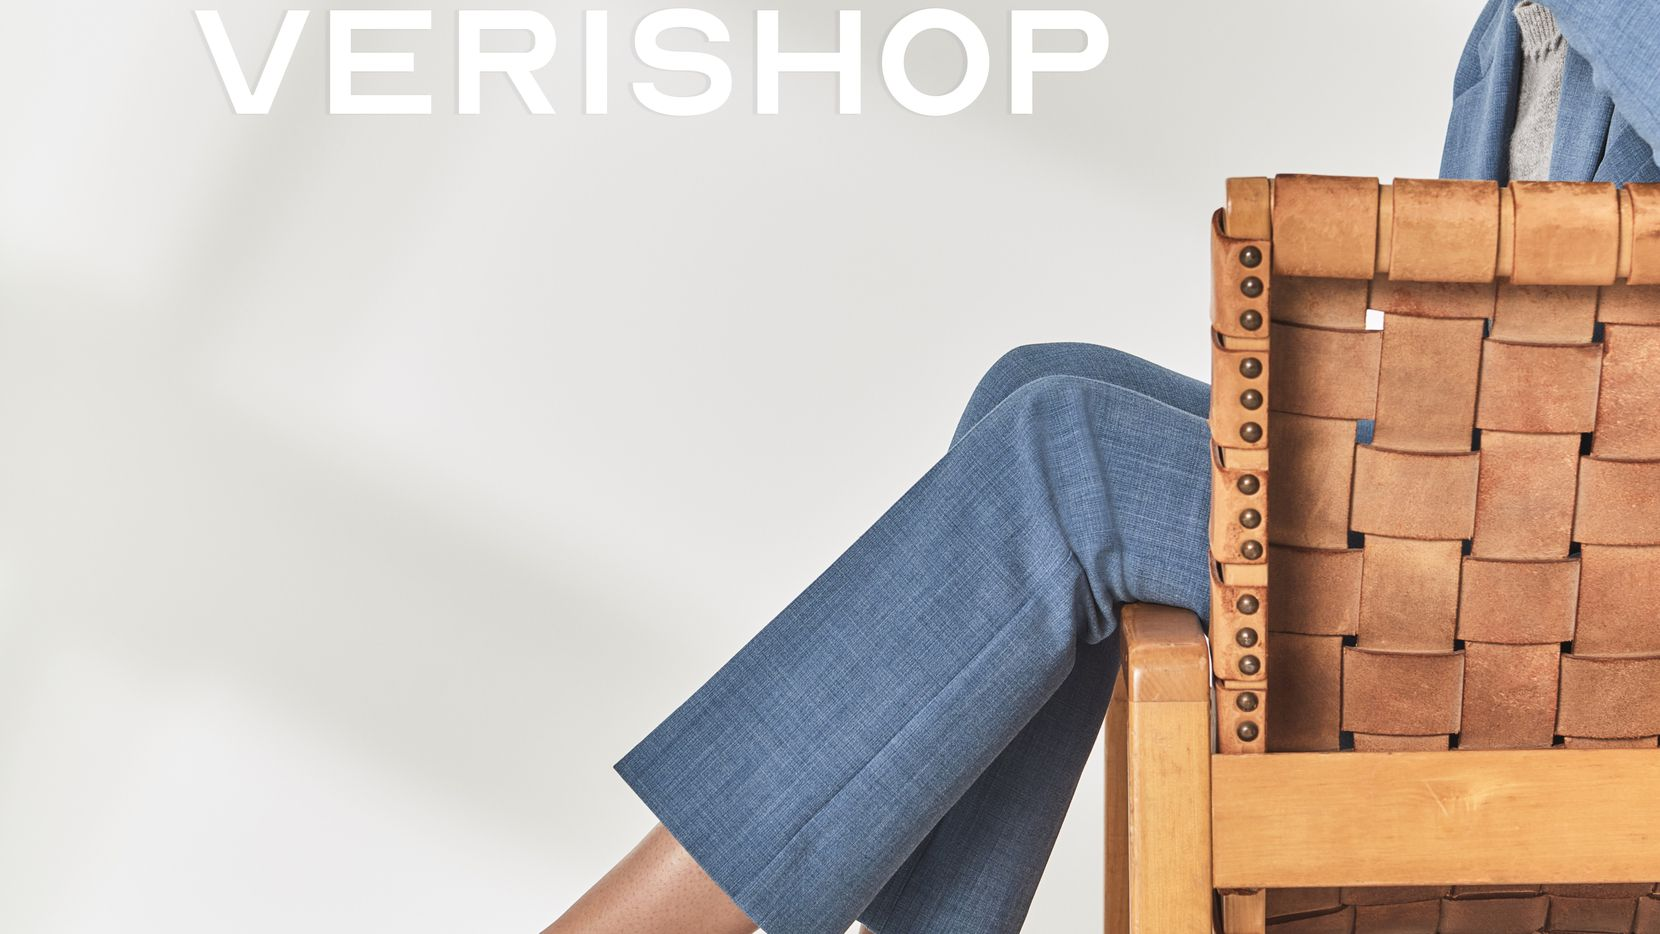 Verishop is an online department store that opened for business in June 2019. It launched its social commerce app in July and plans to open a third hub office in Dallas. It operates now from New York City and Santa Monica, Calif. Founders Imran and Cate Kahn have relocated to Dallas.